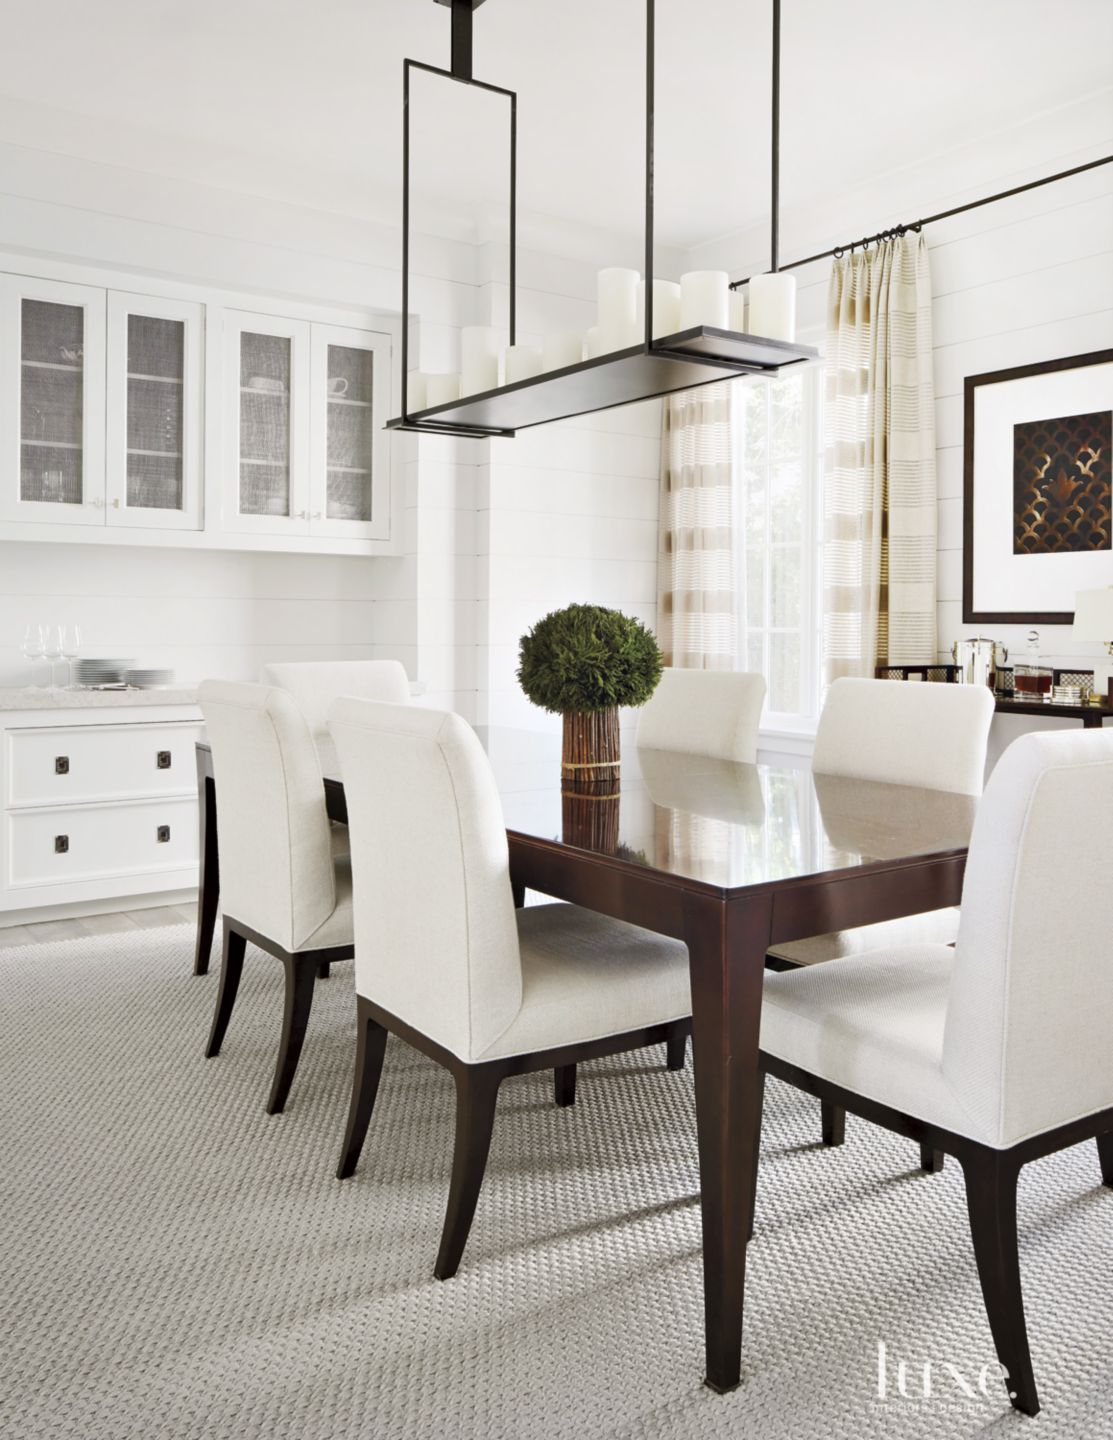 Transitional White Dining Room with Candle Light Fixture